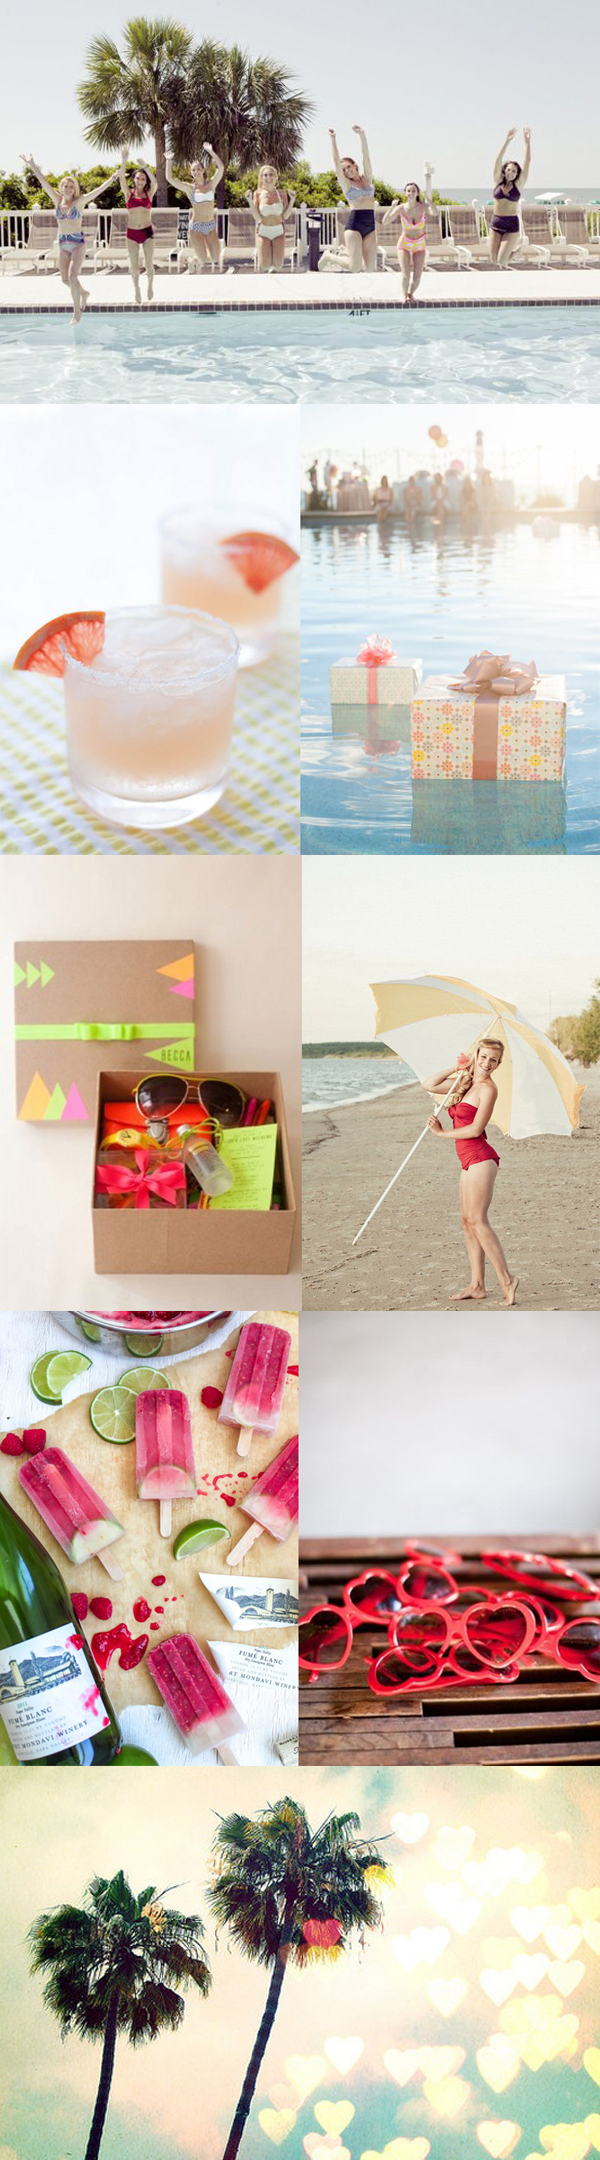 Tropical Beach Bachelorette Inspiration Board